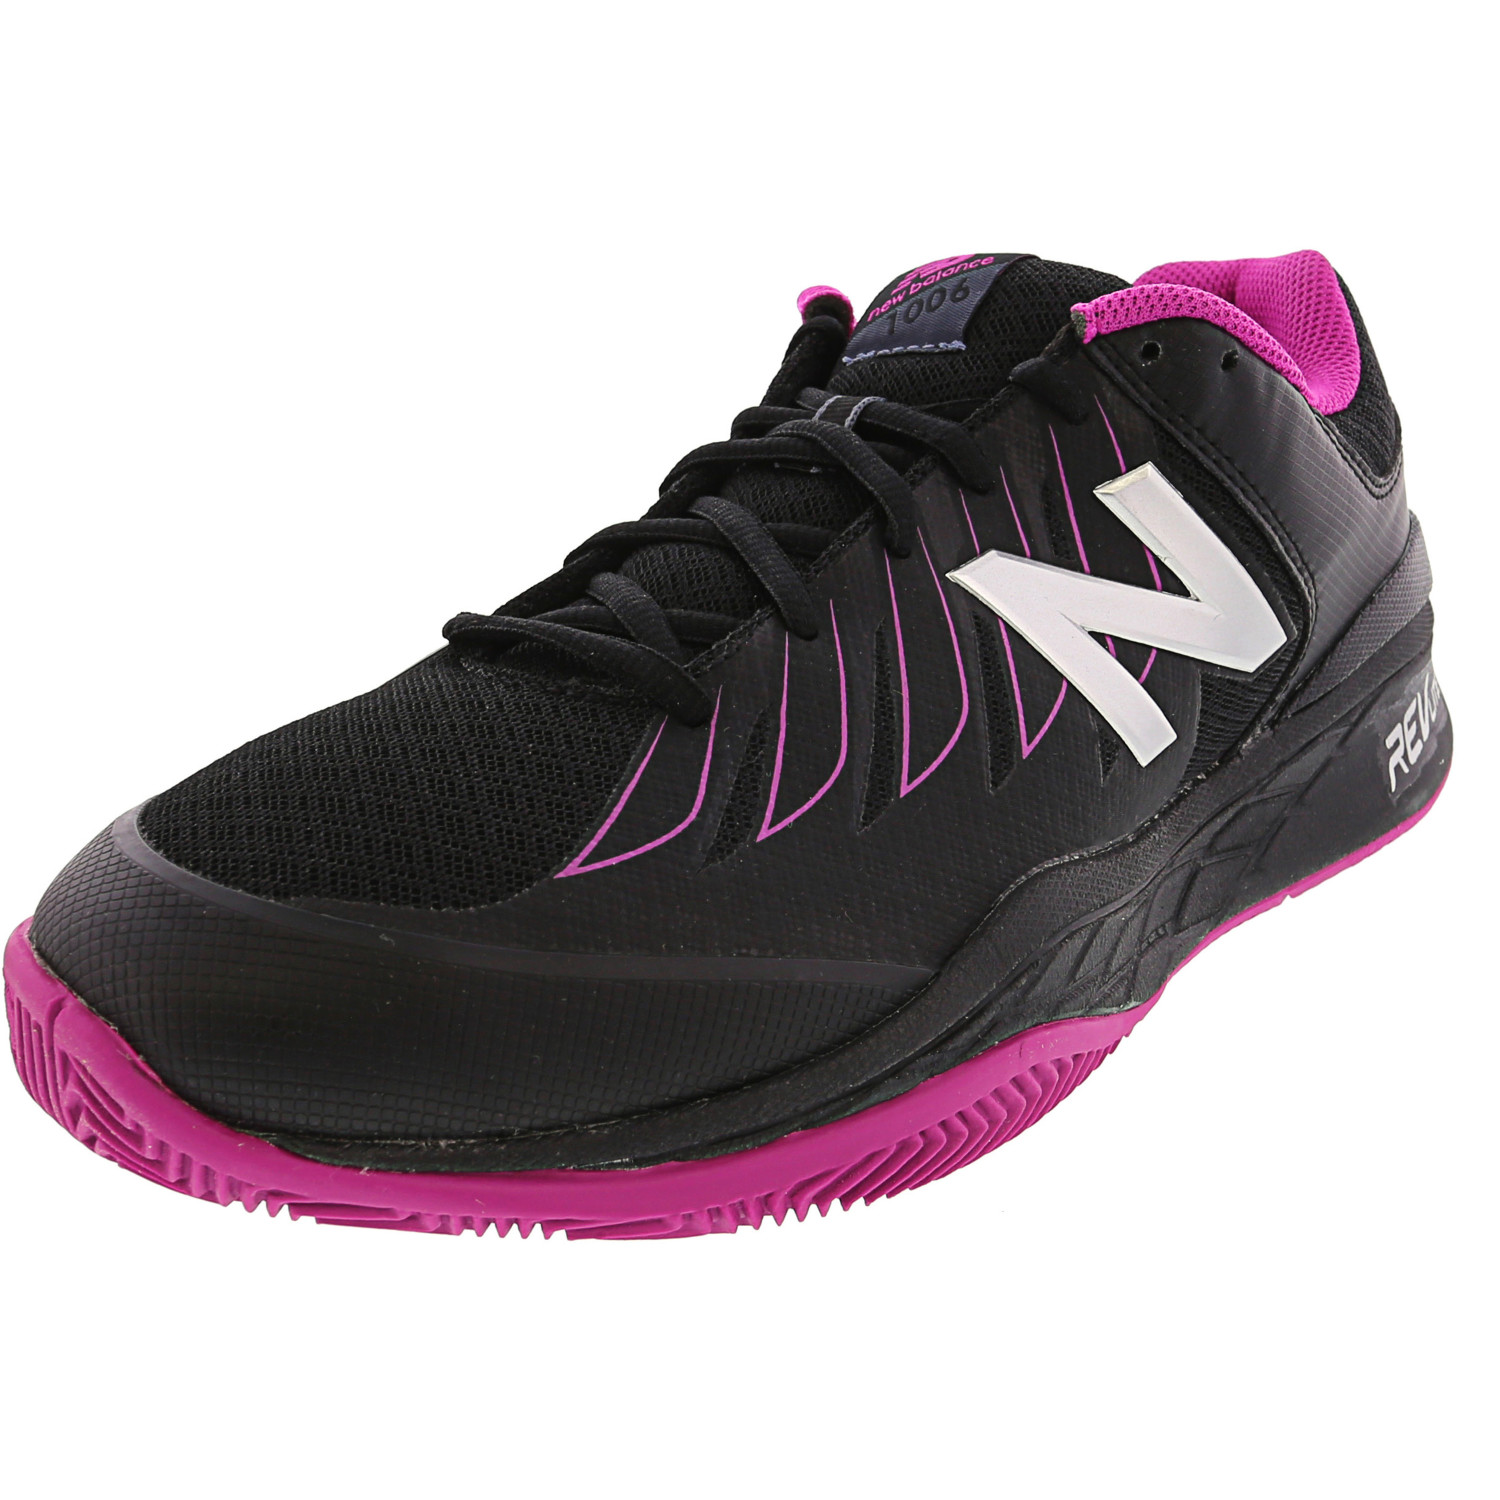 New Balance Women's Wc1006 Wr Ankle